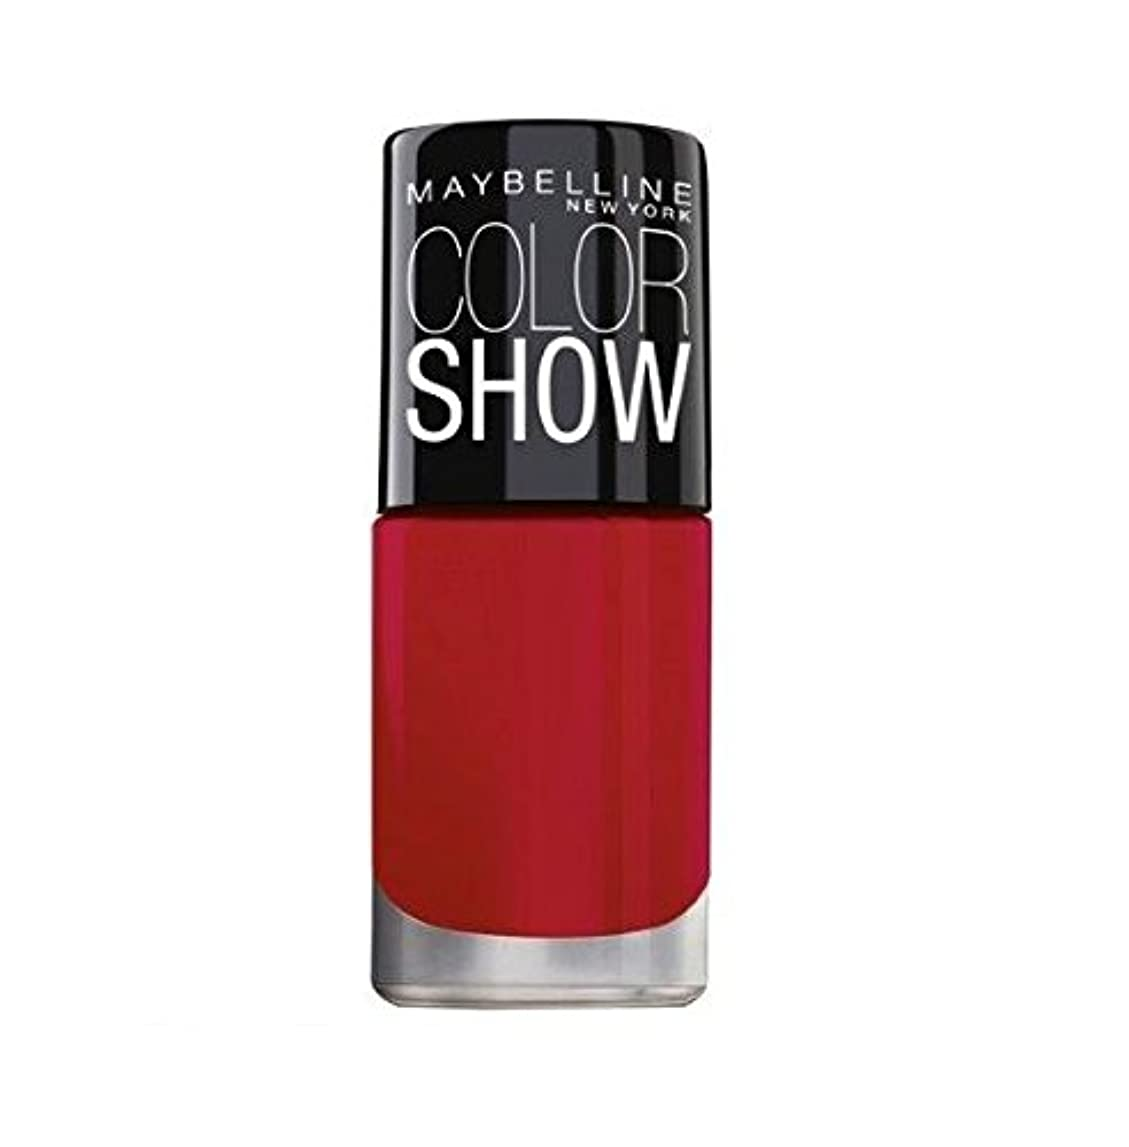 腹半球優先権Maybelline Color Show Bright Sparks, Power of Red 708, 6ml